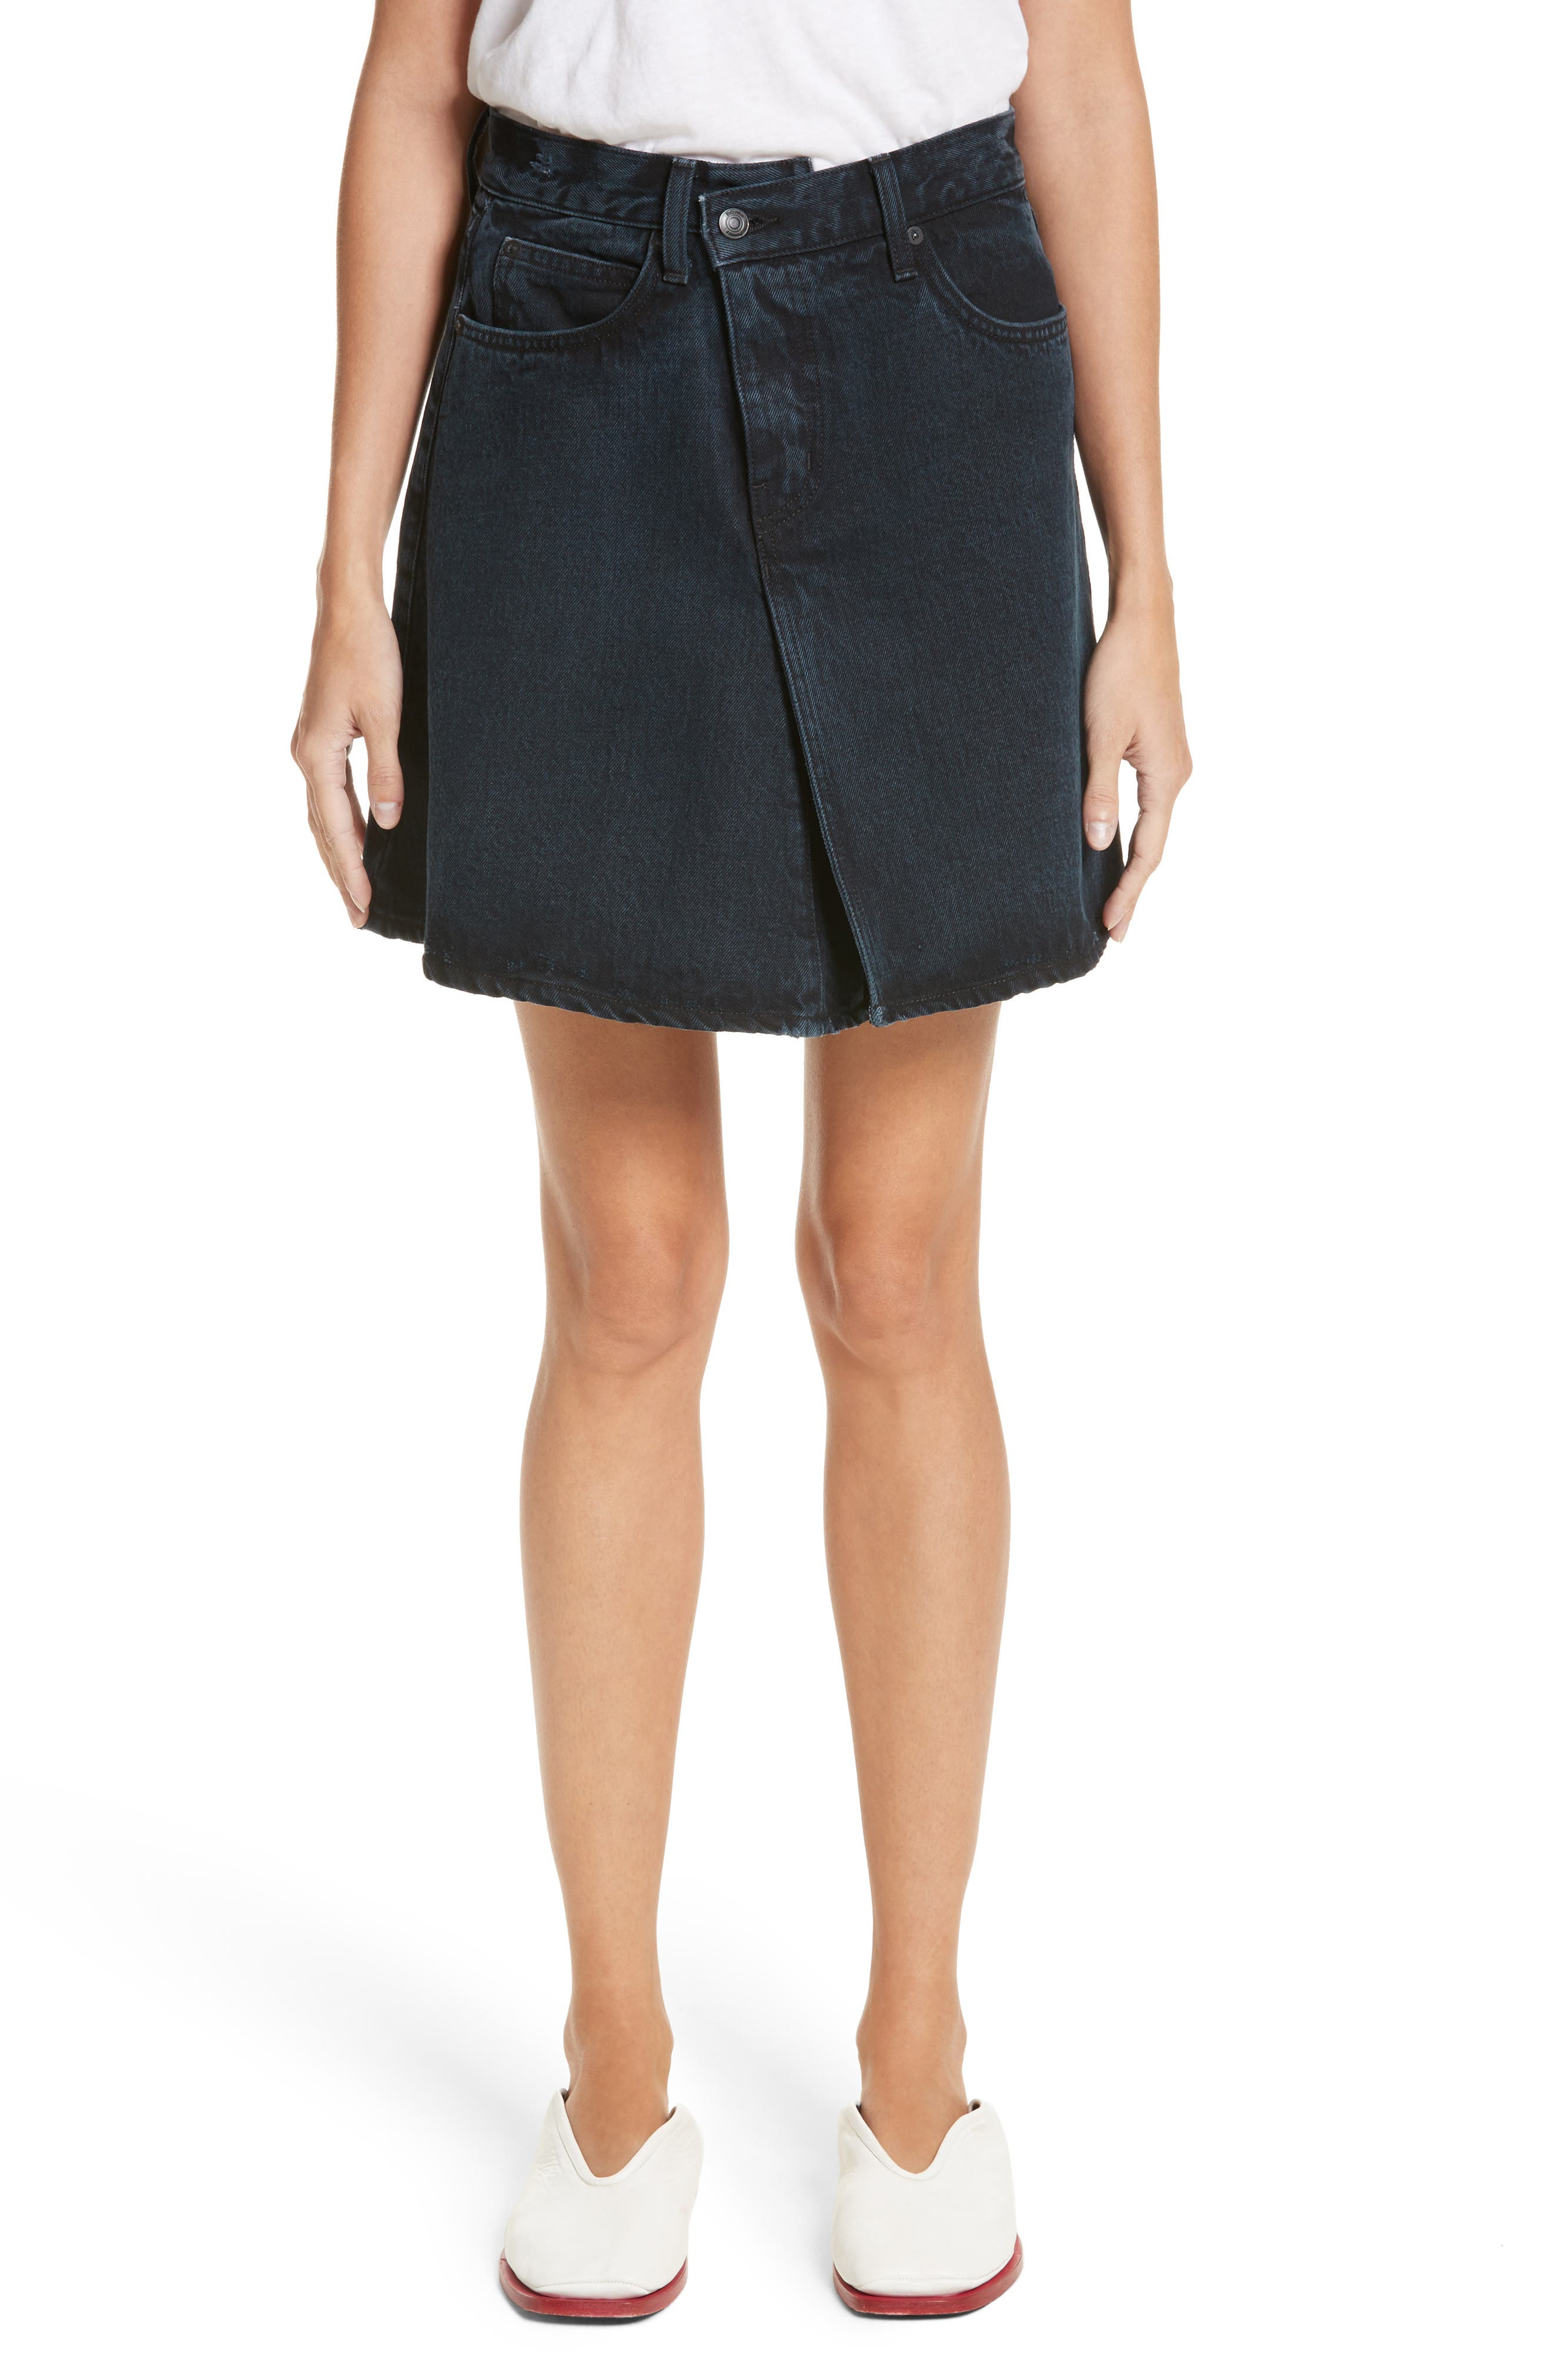 Proenza Schouler PSWL Folded Denim Skirt